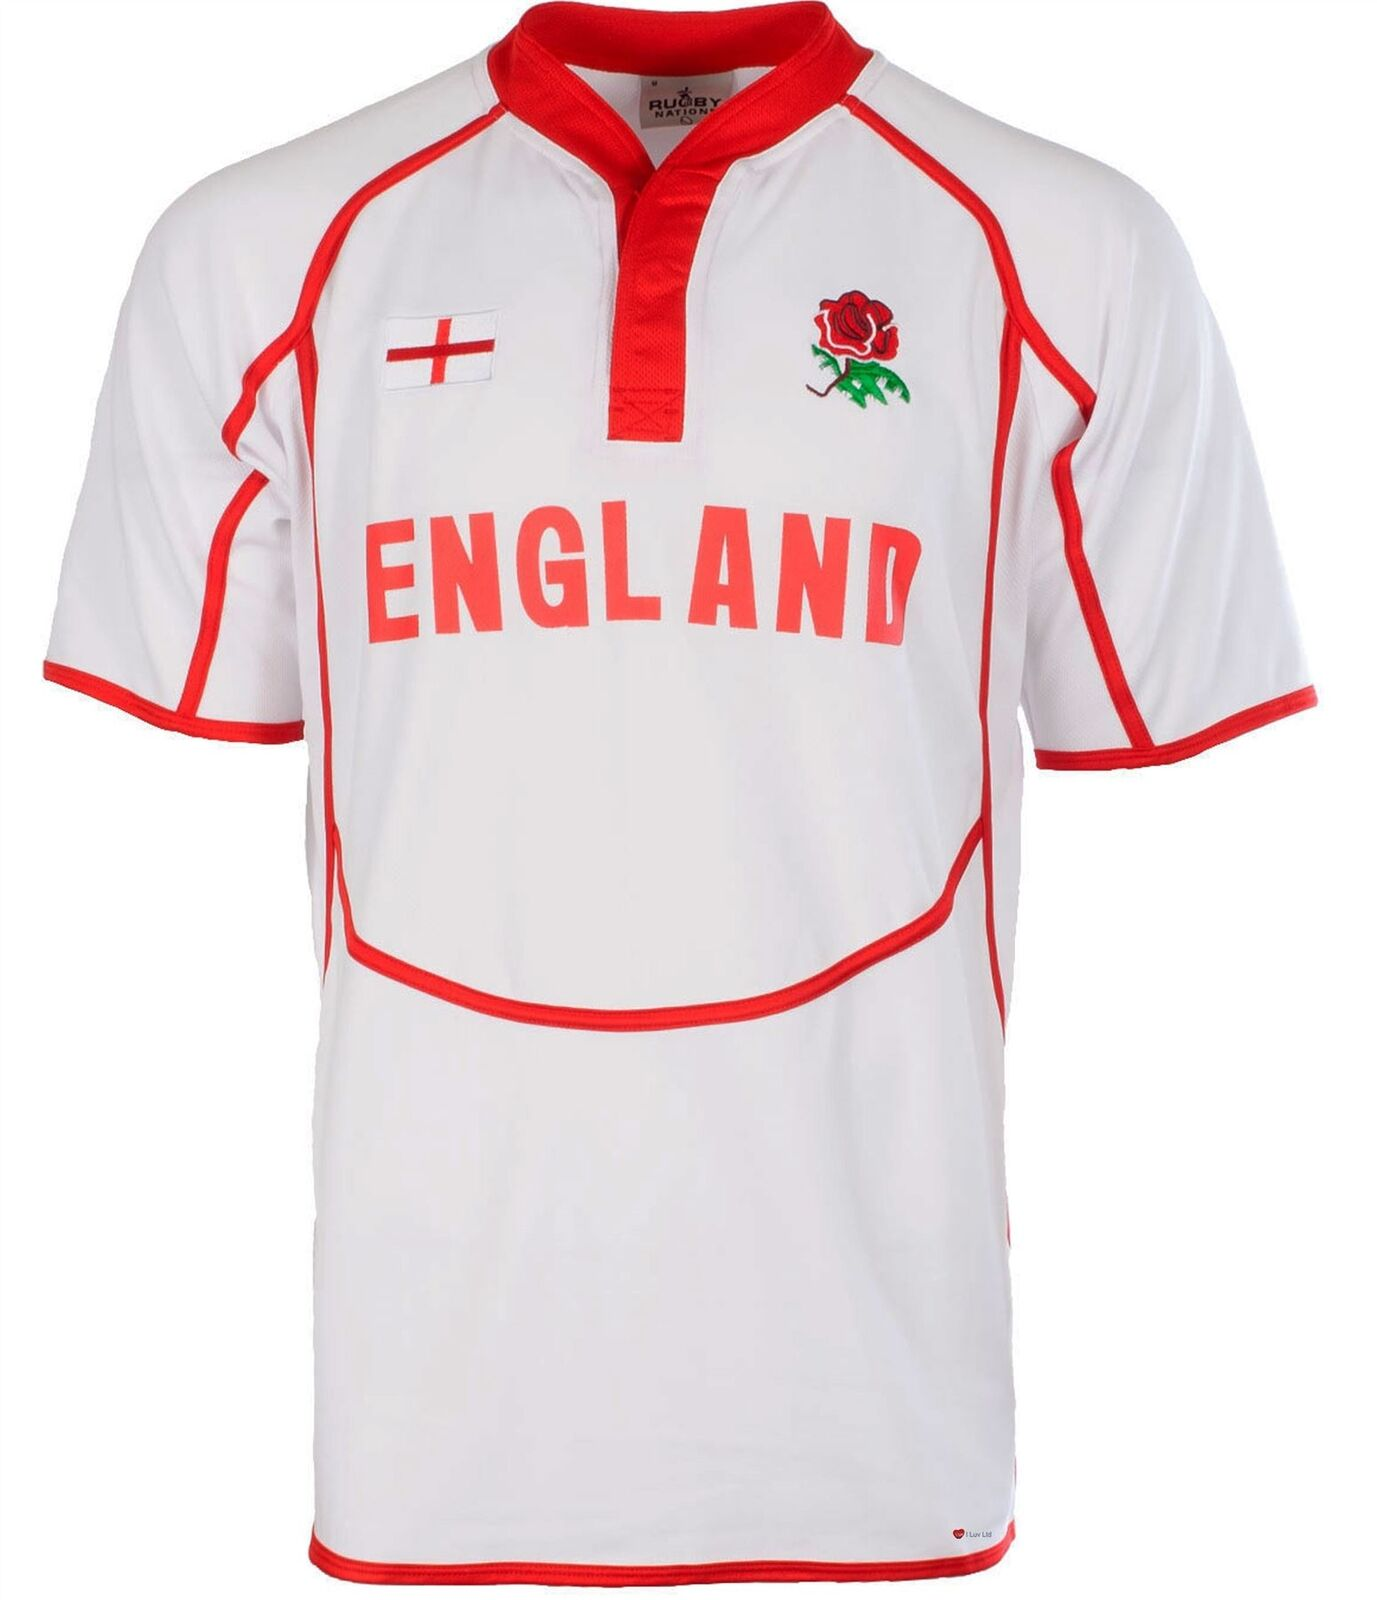 Gents Cooldry Style Rugby Shirt In England Colours Size 3X-Large